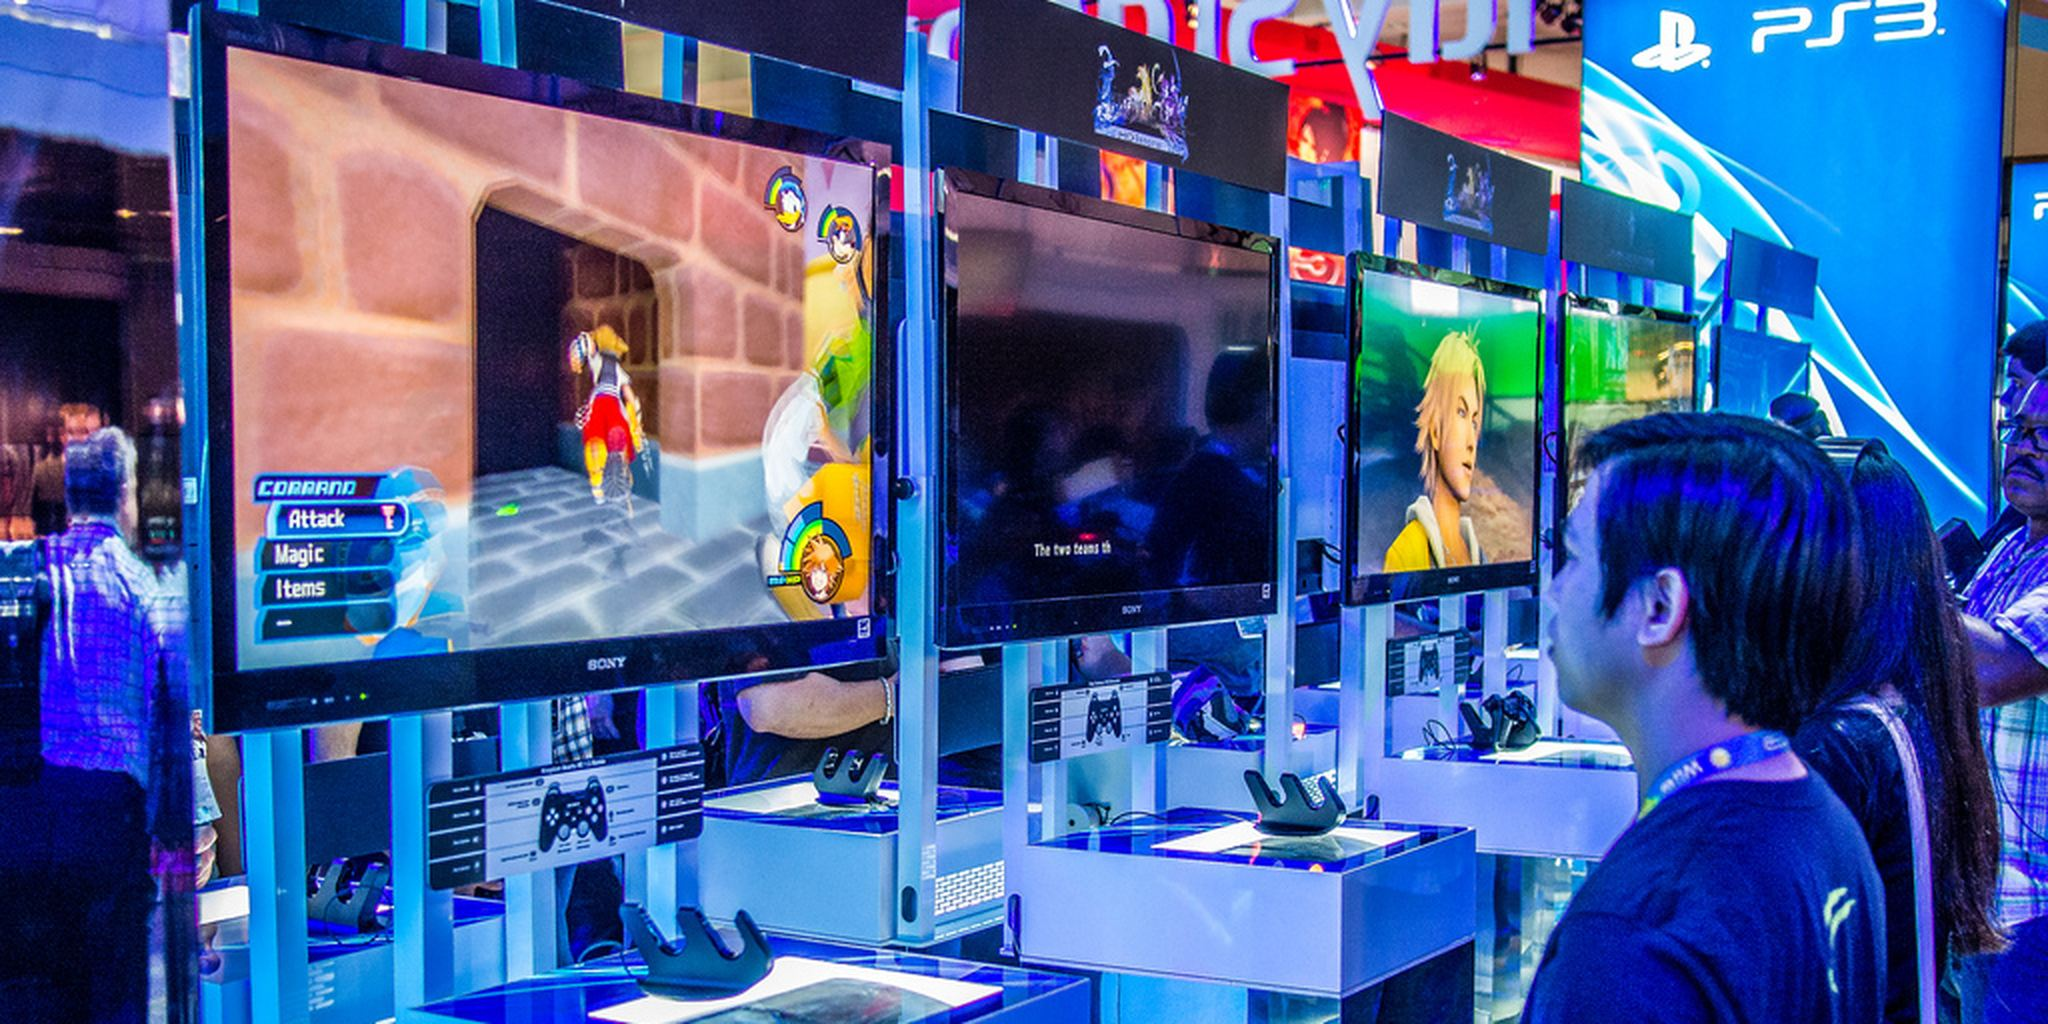 All sizes   E3 2013   Flickr - Photo Sharing!